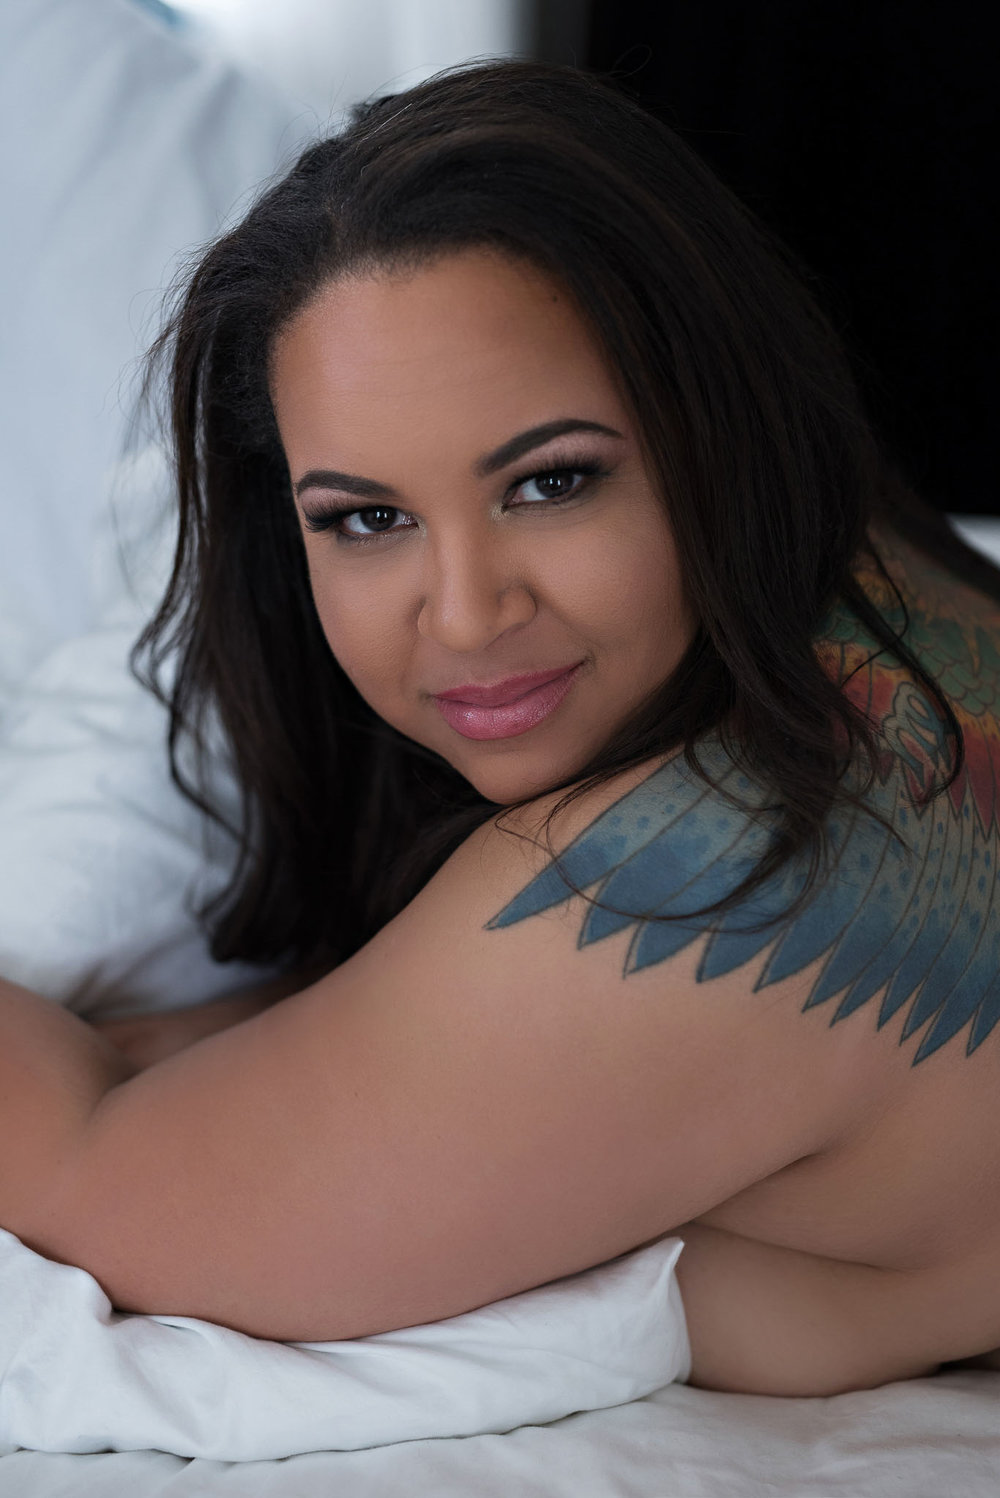 Curvy tattooed African American woman with sultry eyes in boudoir pose Denver photographer